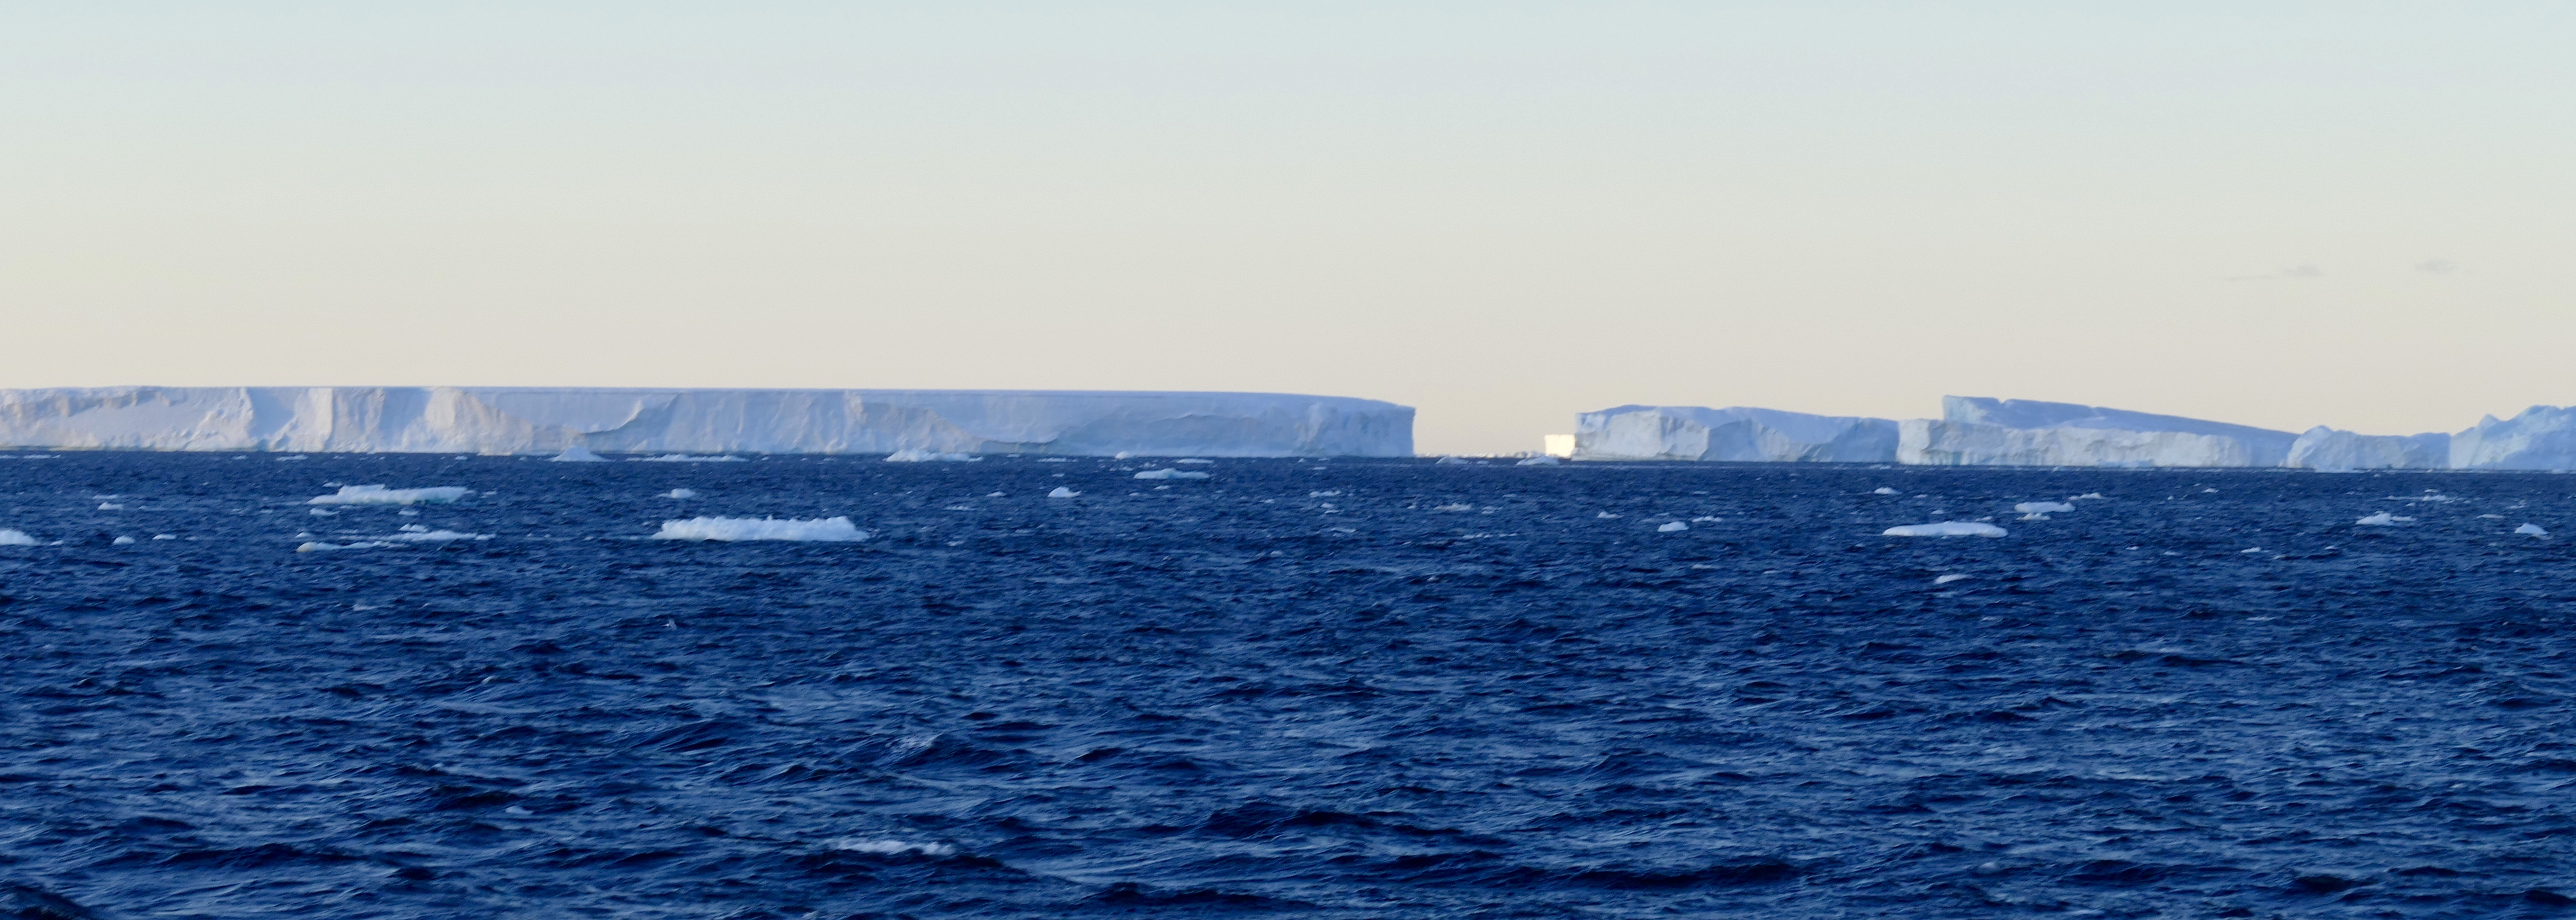 Icebergs, and possibly islands, in the Weddell Sea